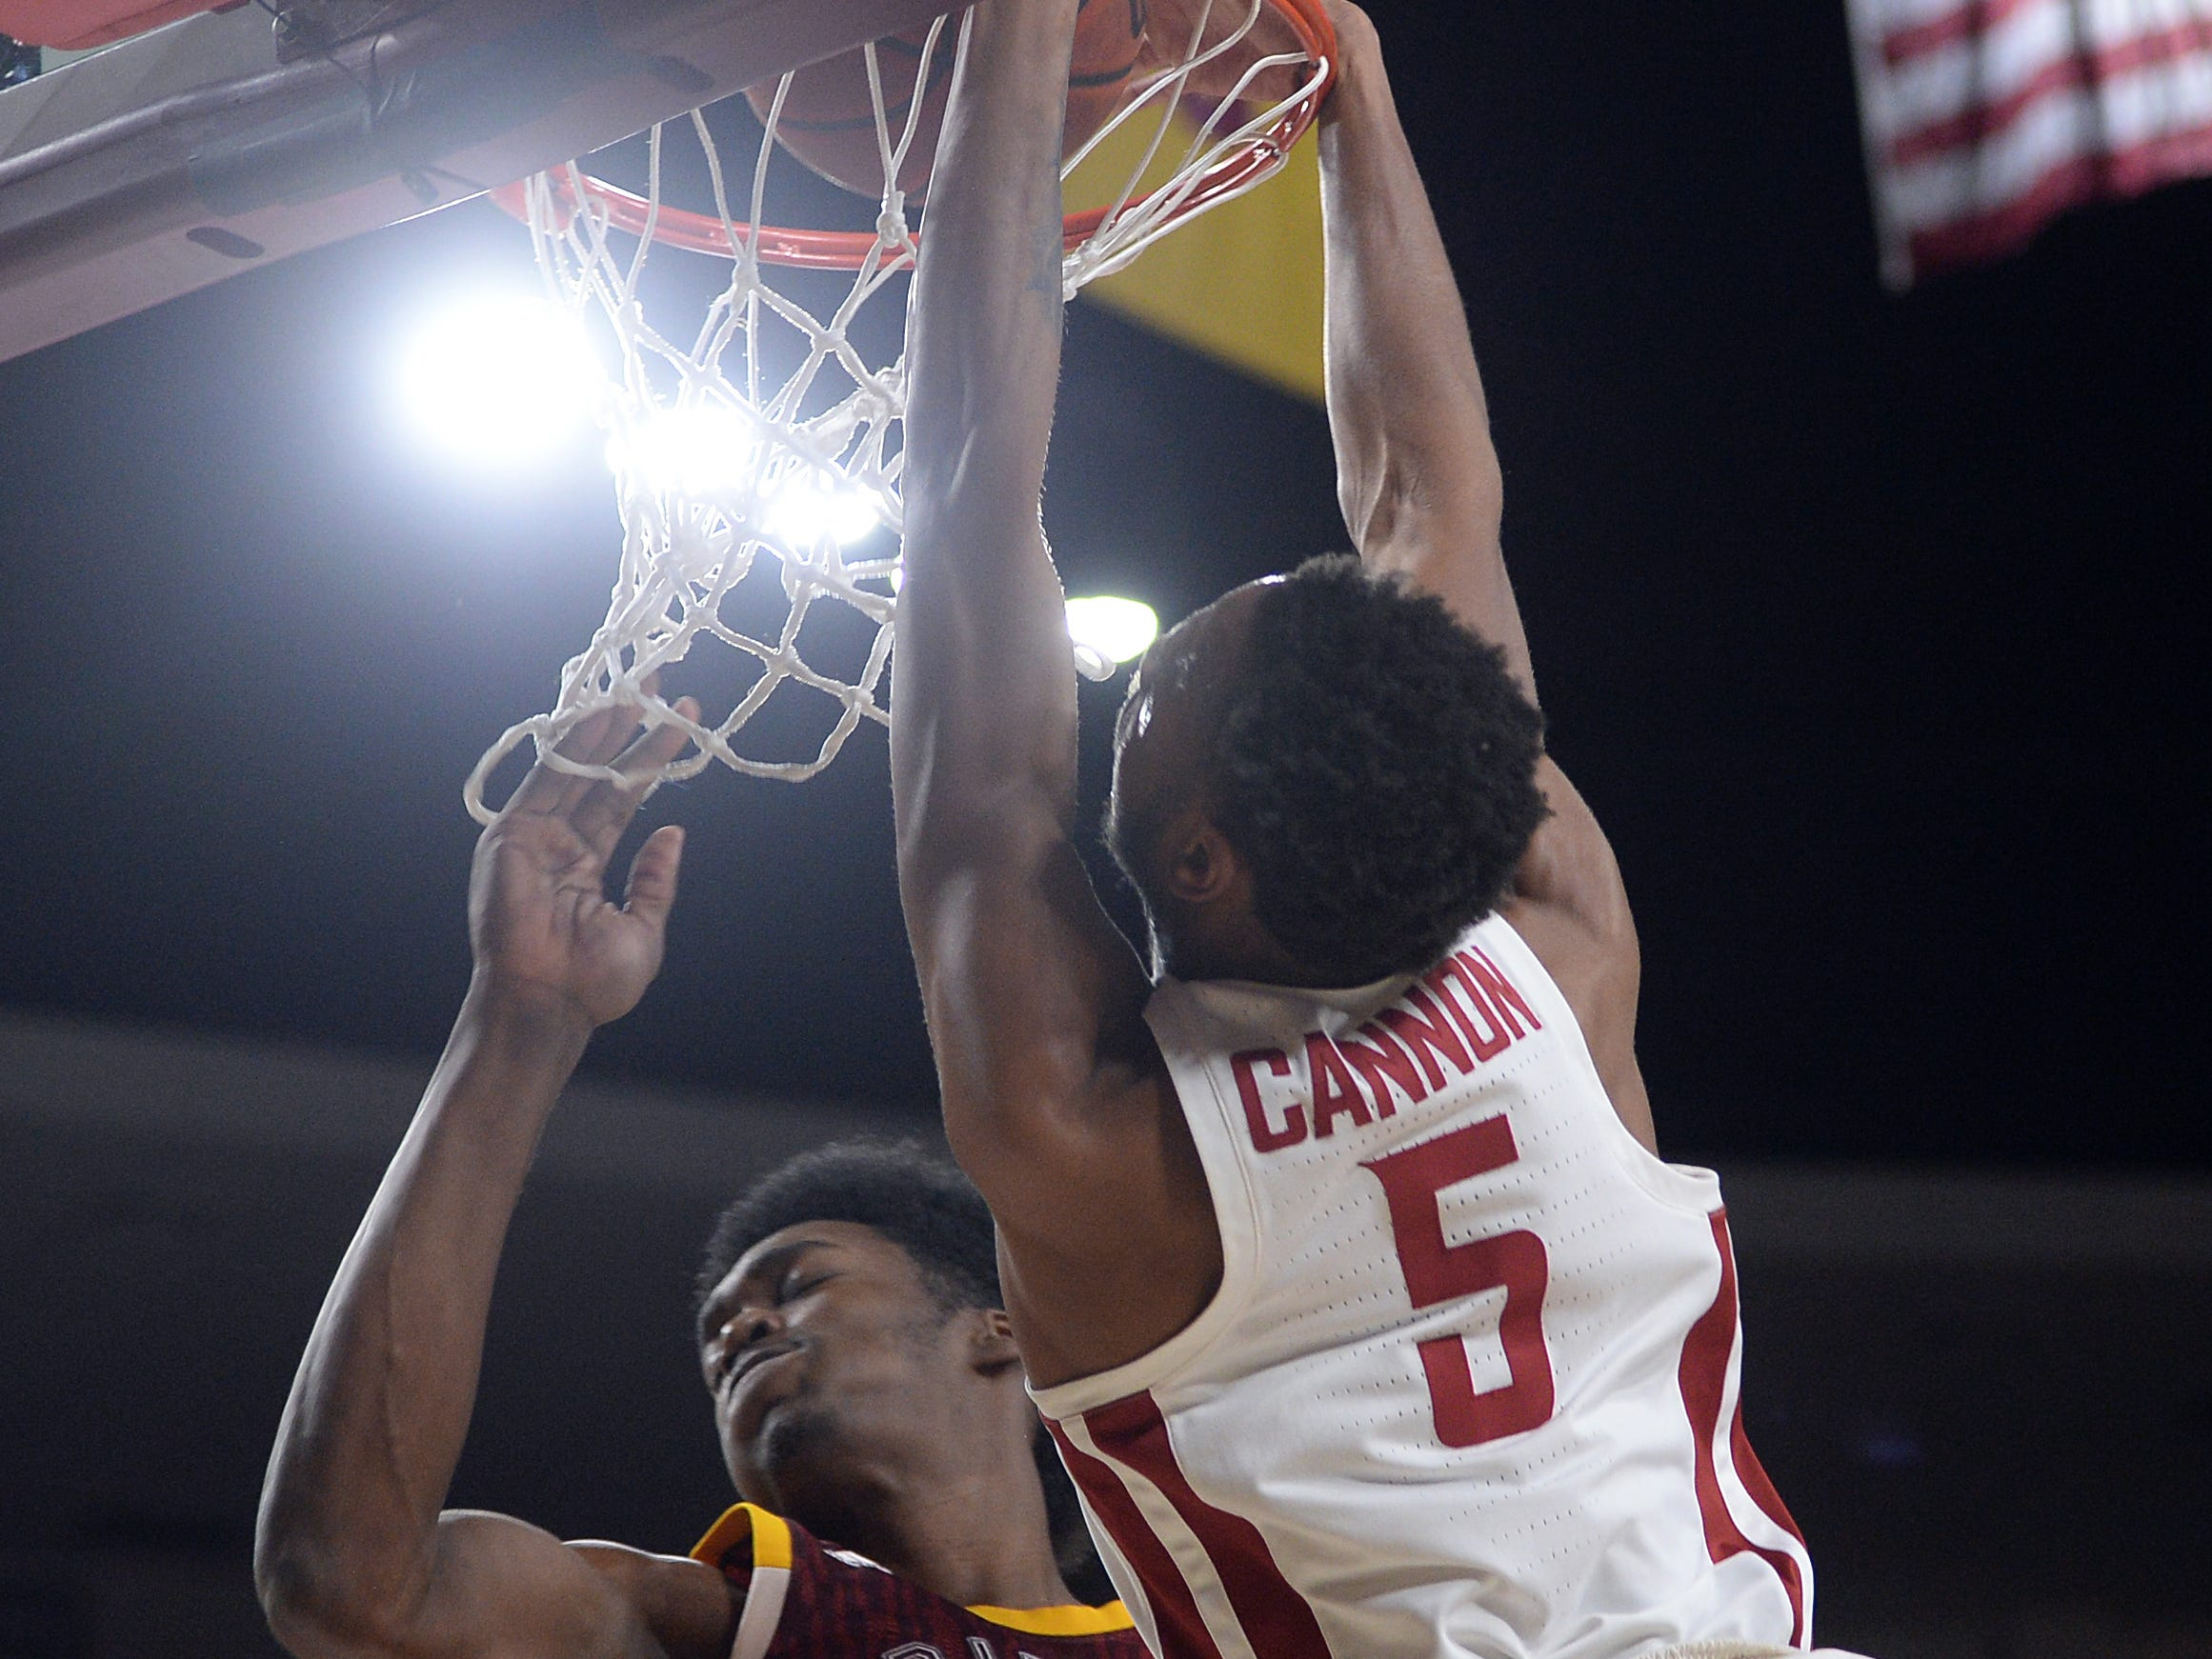 Feb 7, 2019; Tempe, AZ, USA; Washington State Cougars forward Marvin Cannon (5) dunks over Arizona State Sun Devils forward De'Quon Lake (32) during the first half at Wells Fargo Arena (AZ).